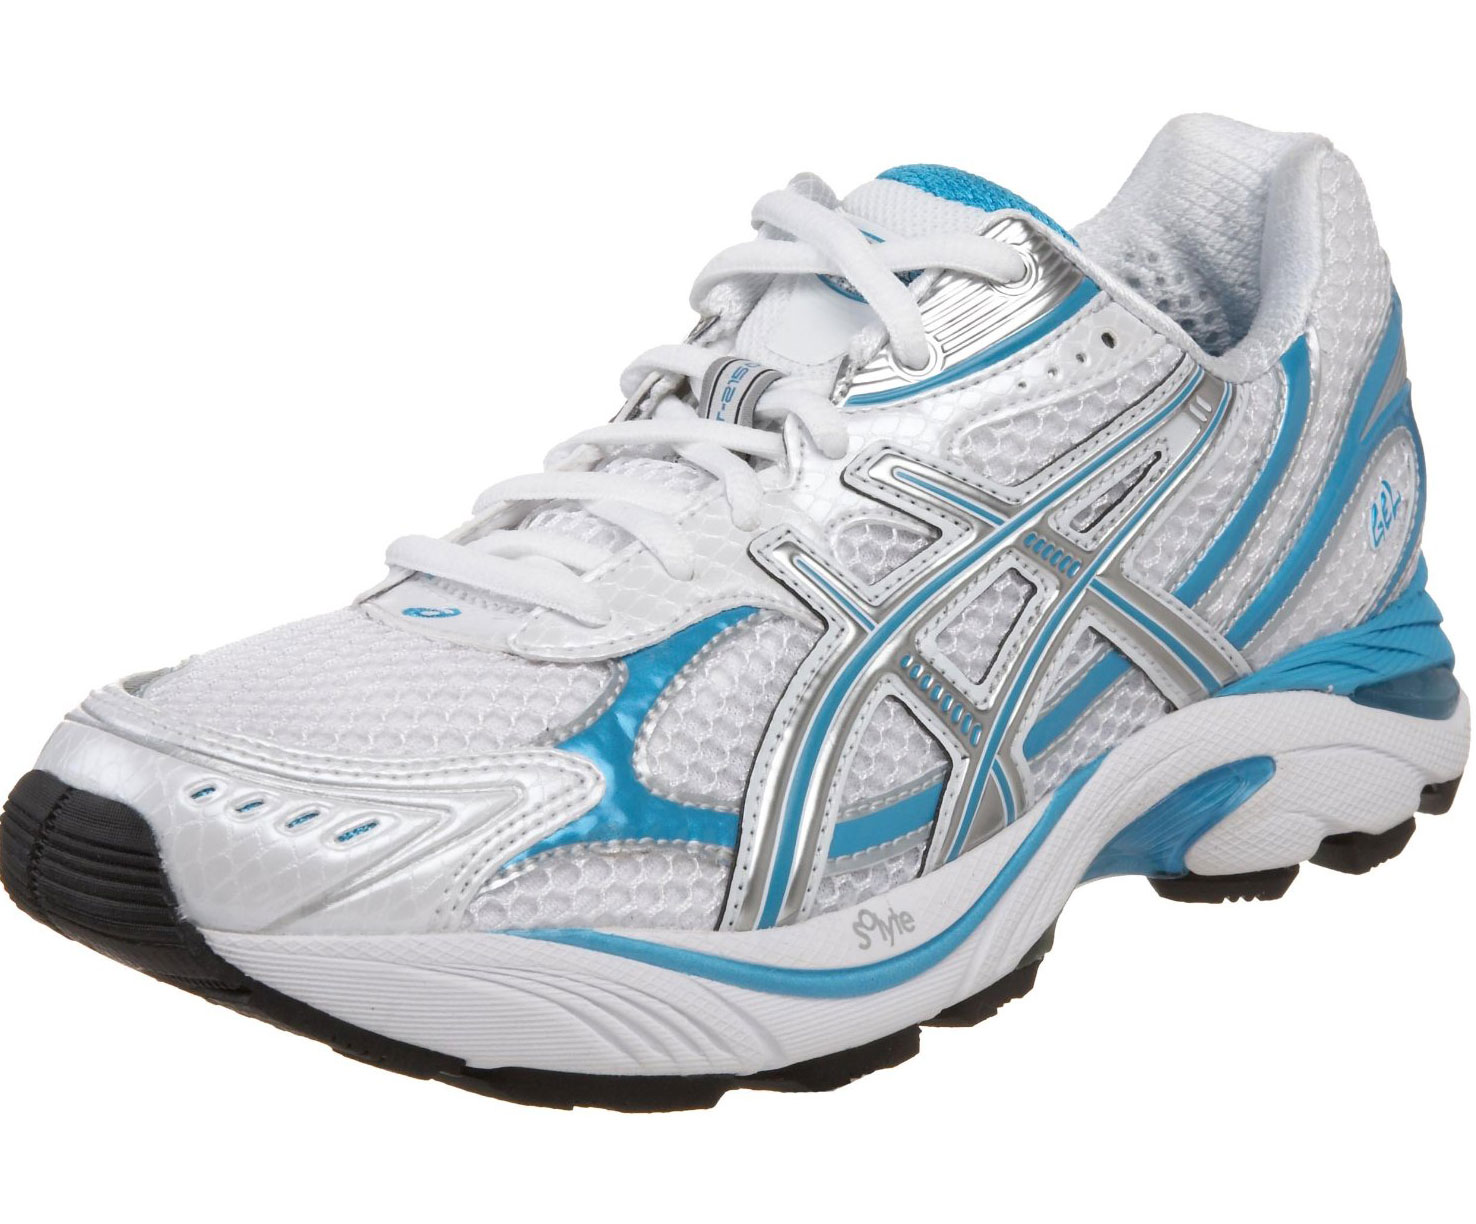 Running Shoes Plantar Fasciitis - Health and Fitness